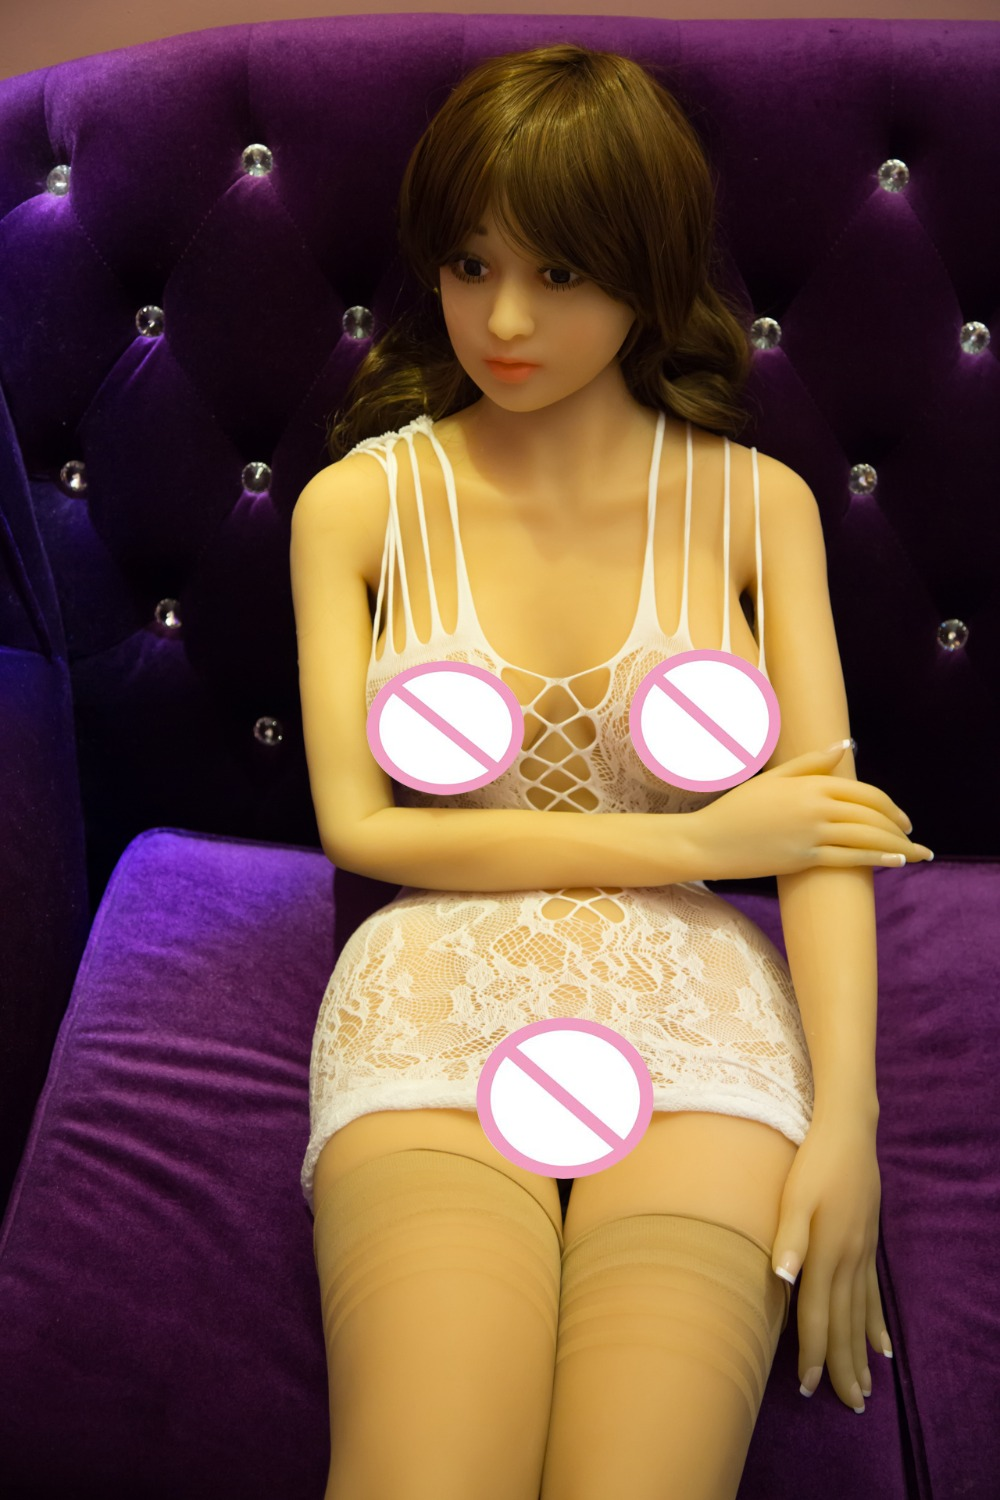 Japanese anime girl hot boobs and pussy